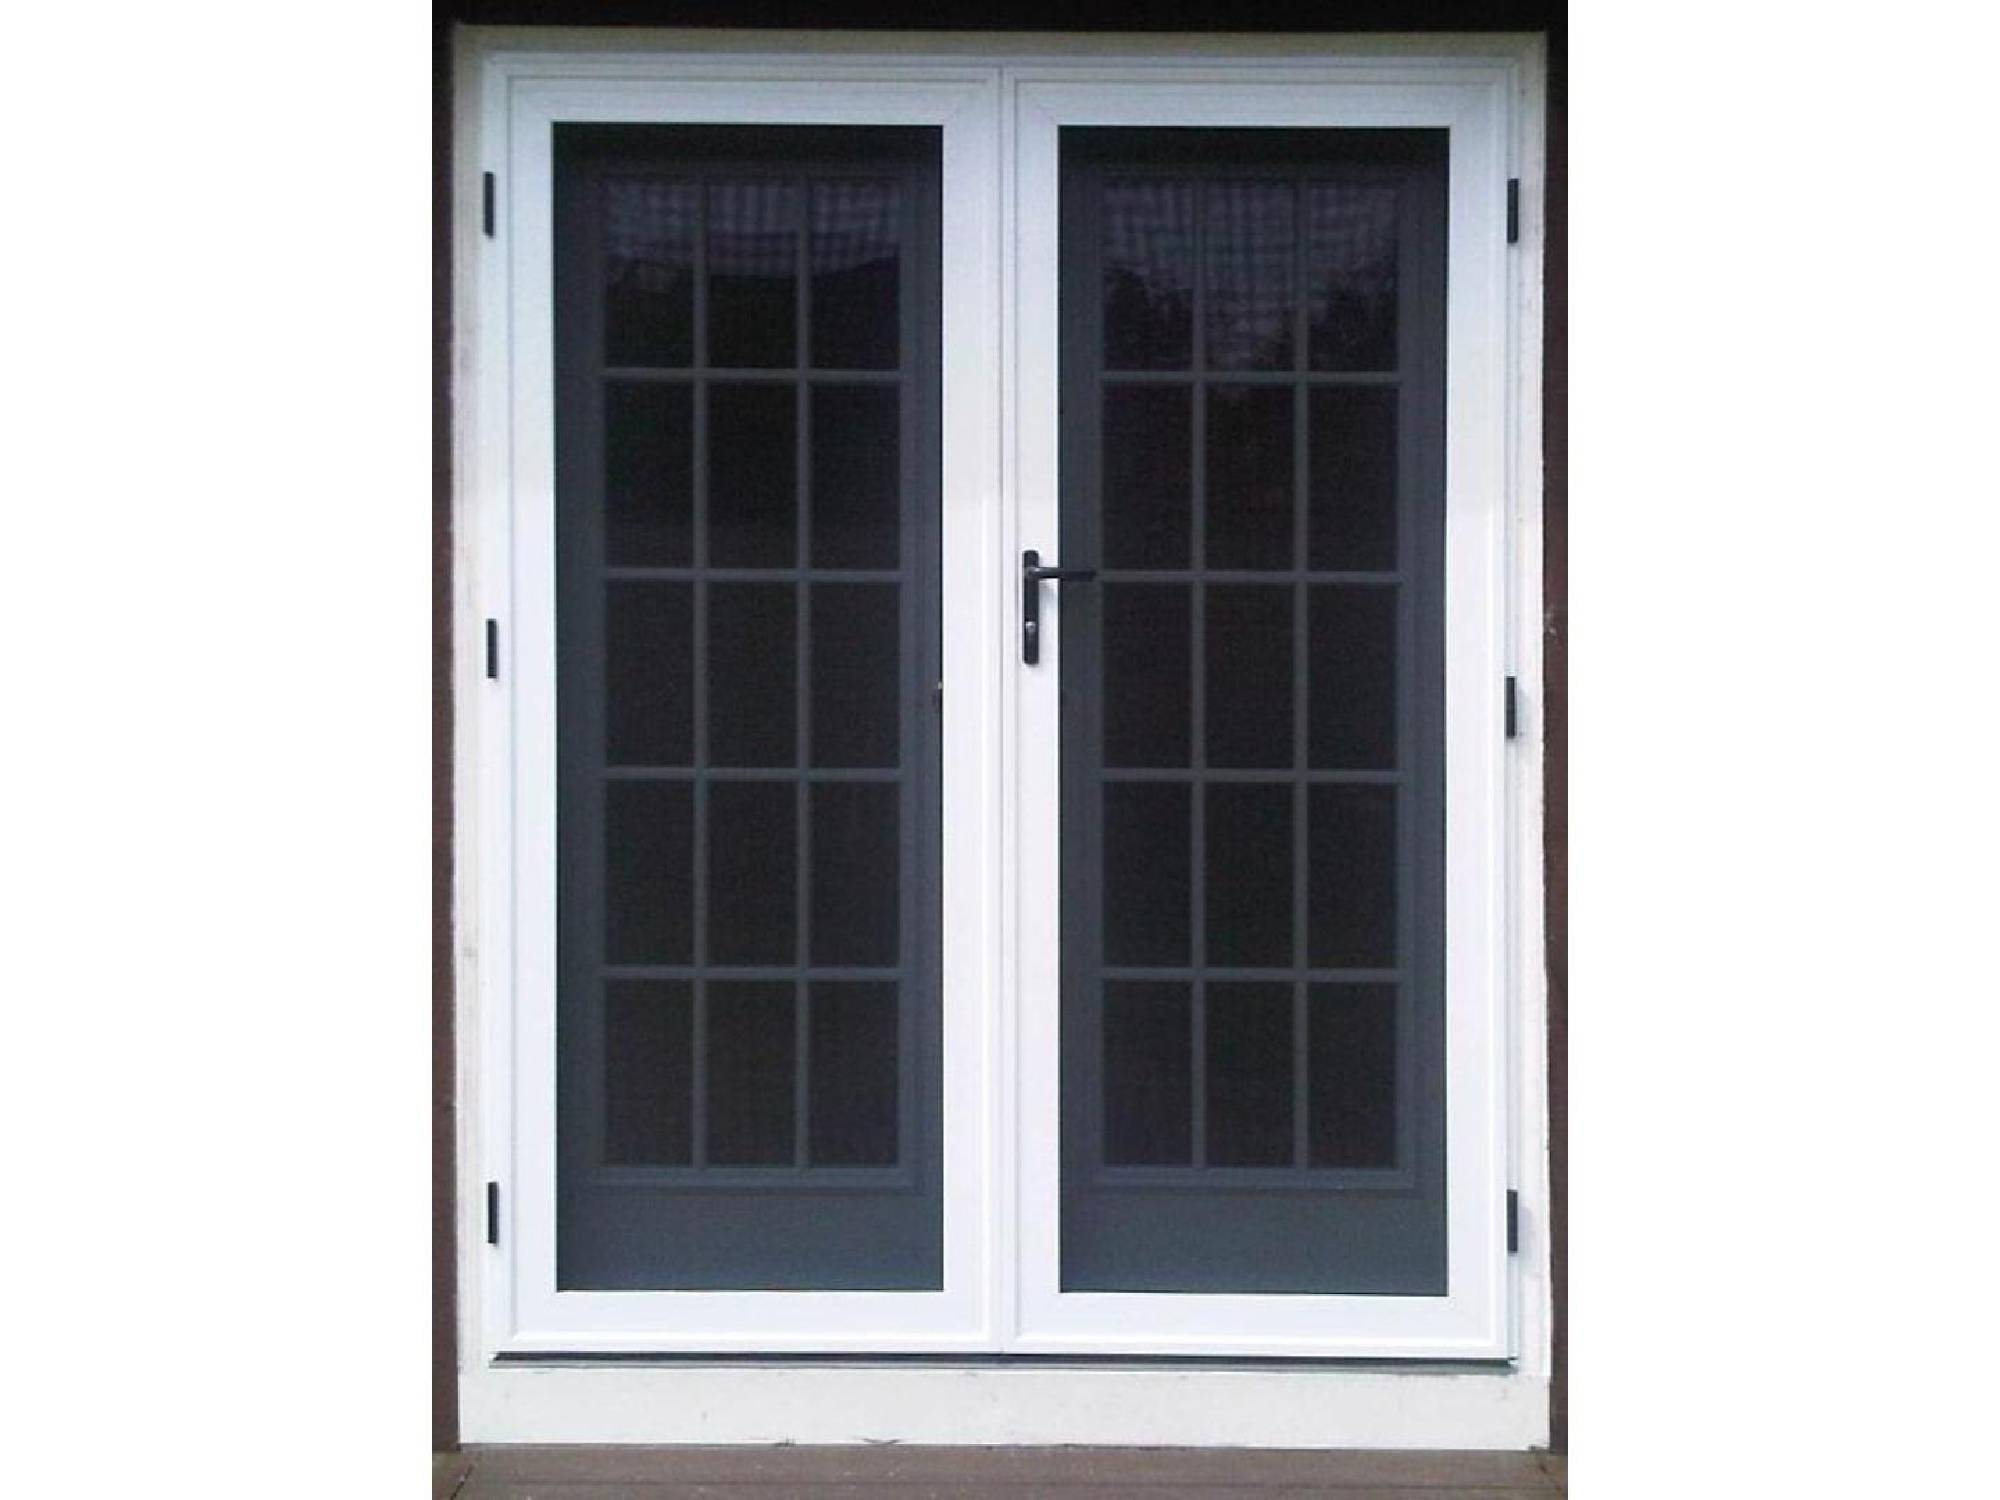 Patio door security tips sliding glass french style for French door style patio doors